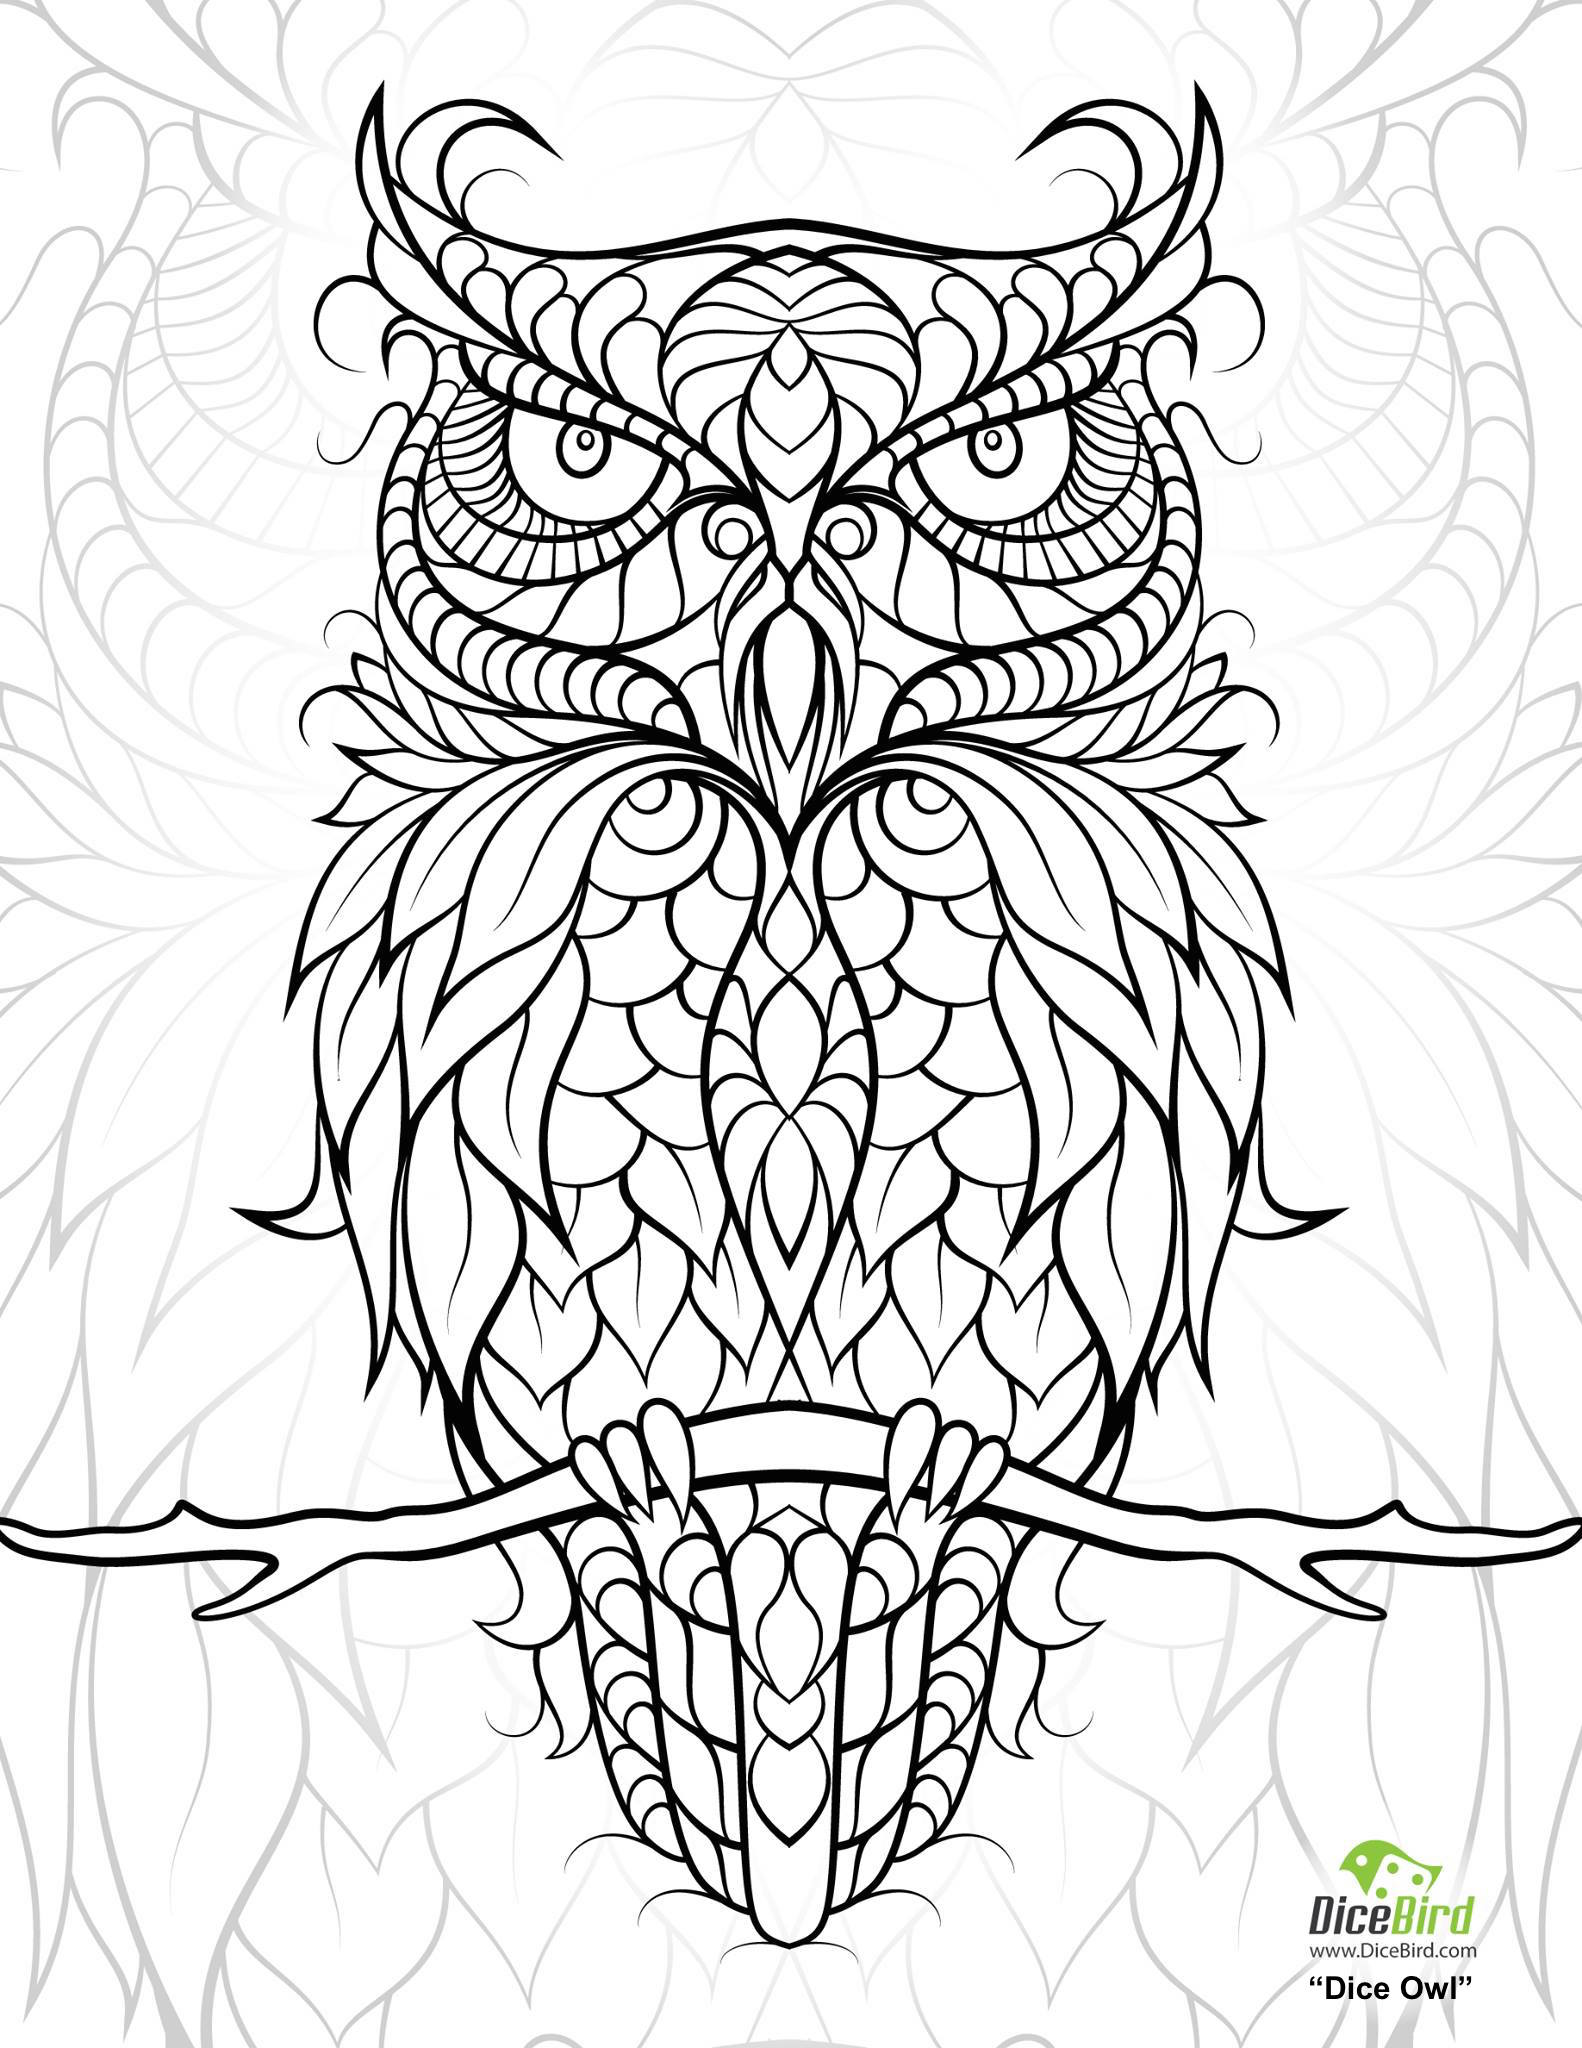 free printable coloring pages for adults free coloring book pages for adults printable coloring free for pages adults